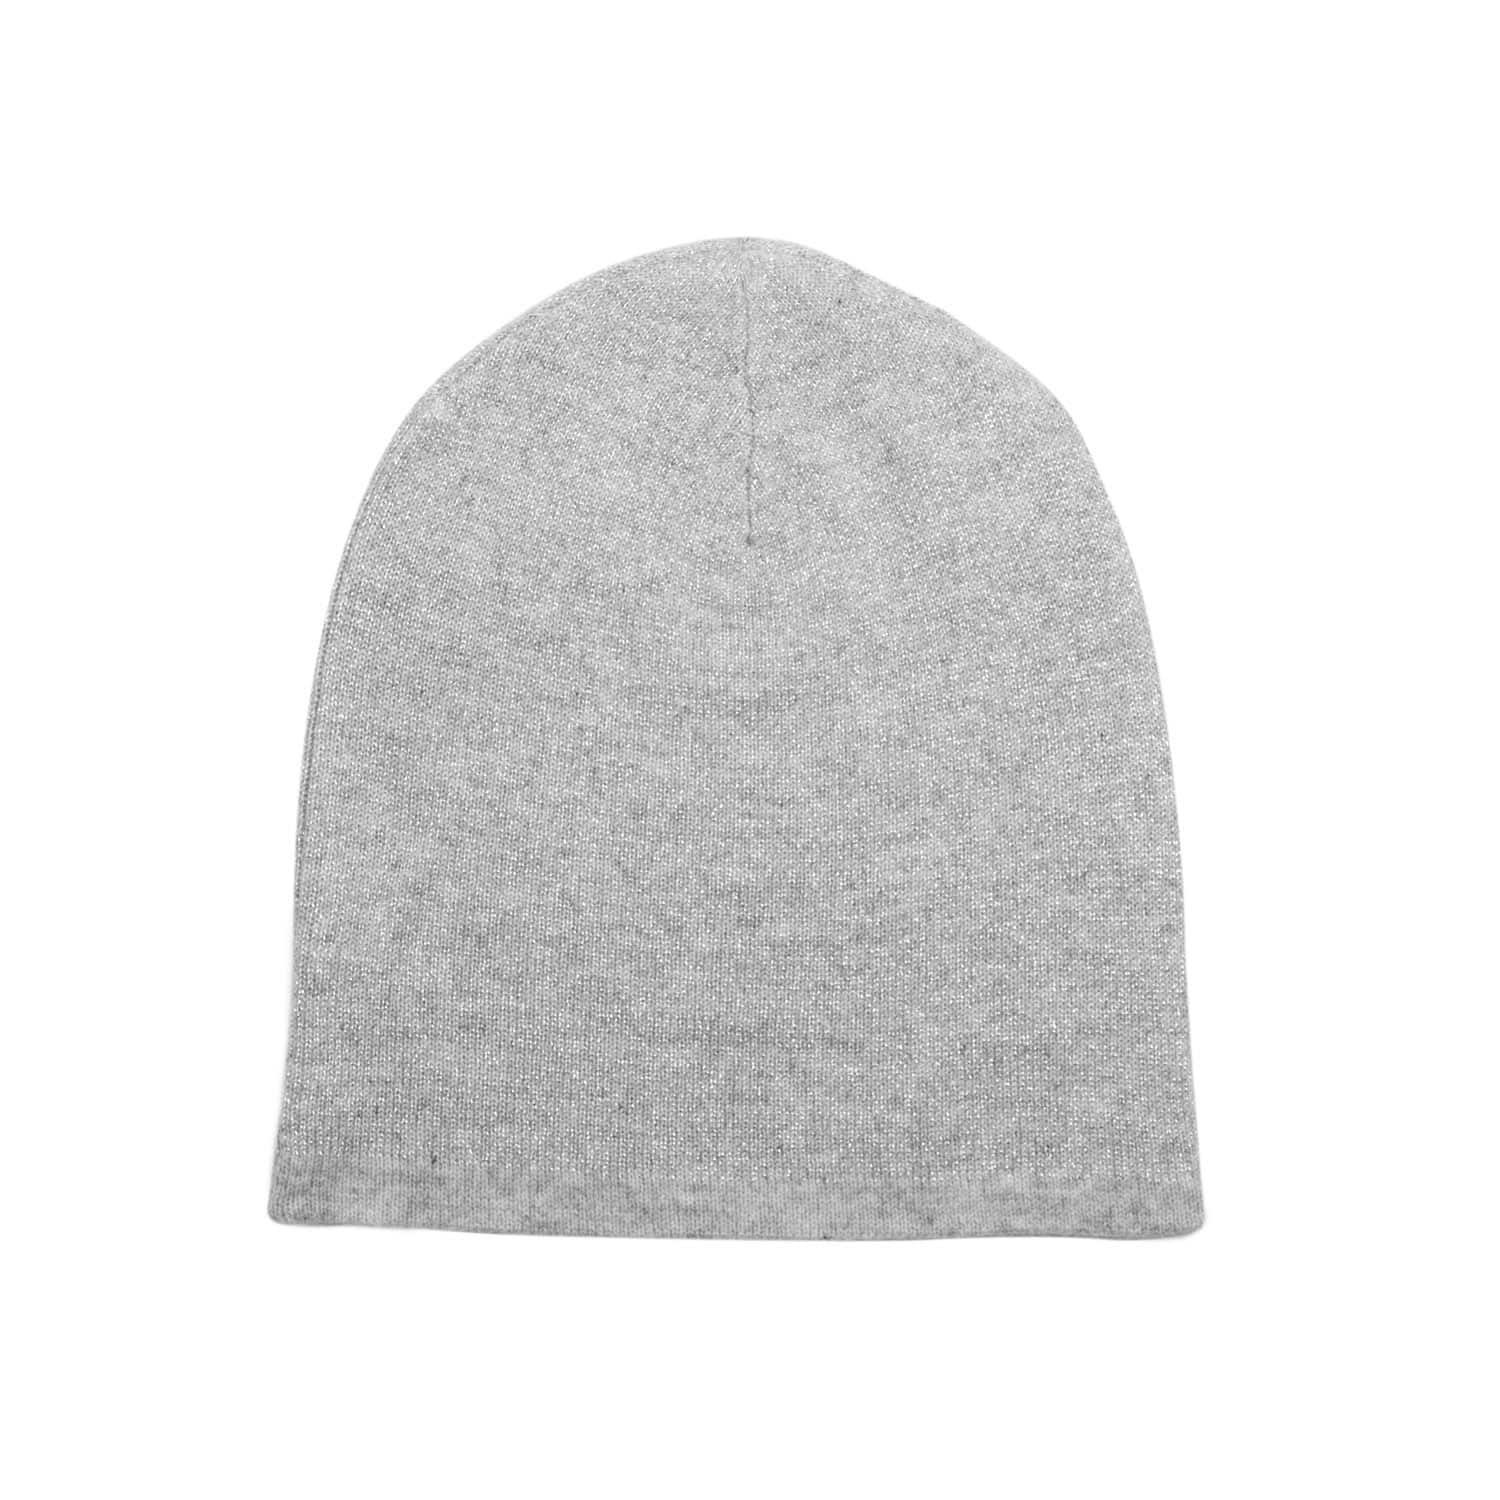 1d027806a54 Cashmere Beanie Grey Sparkly image